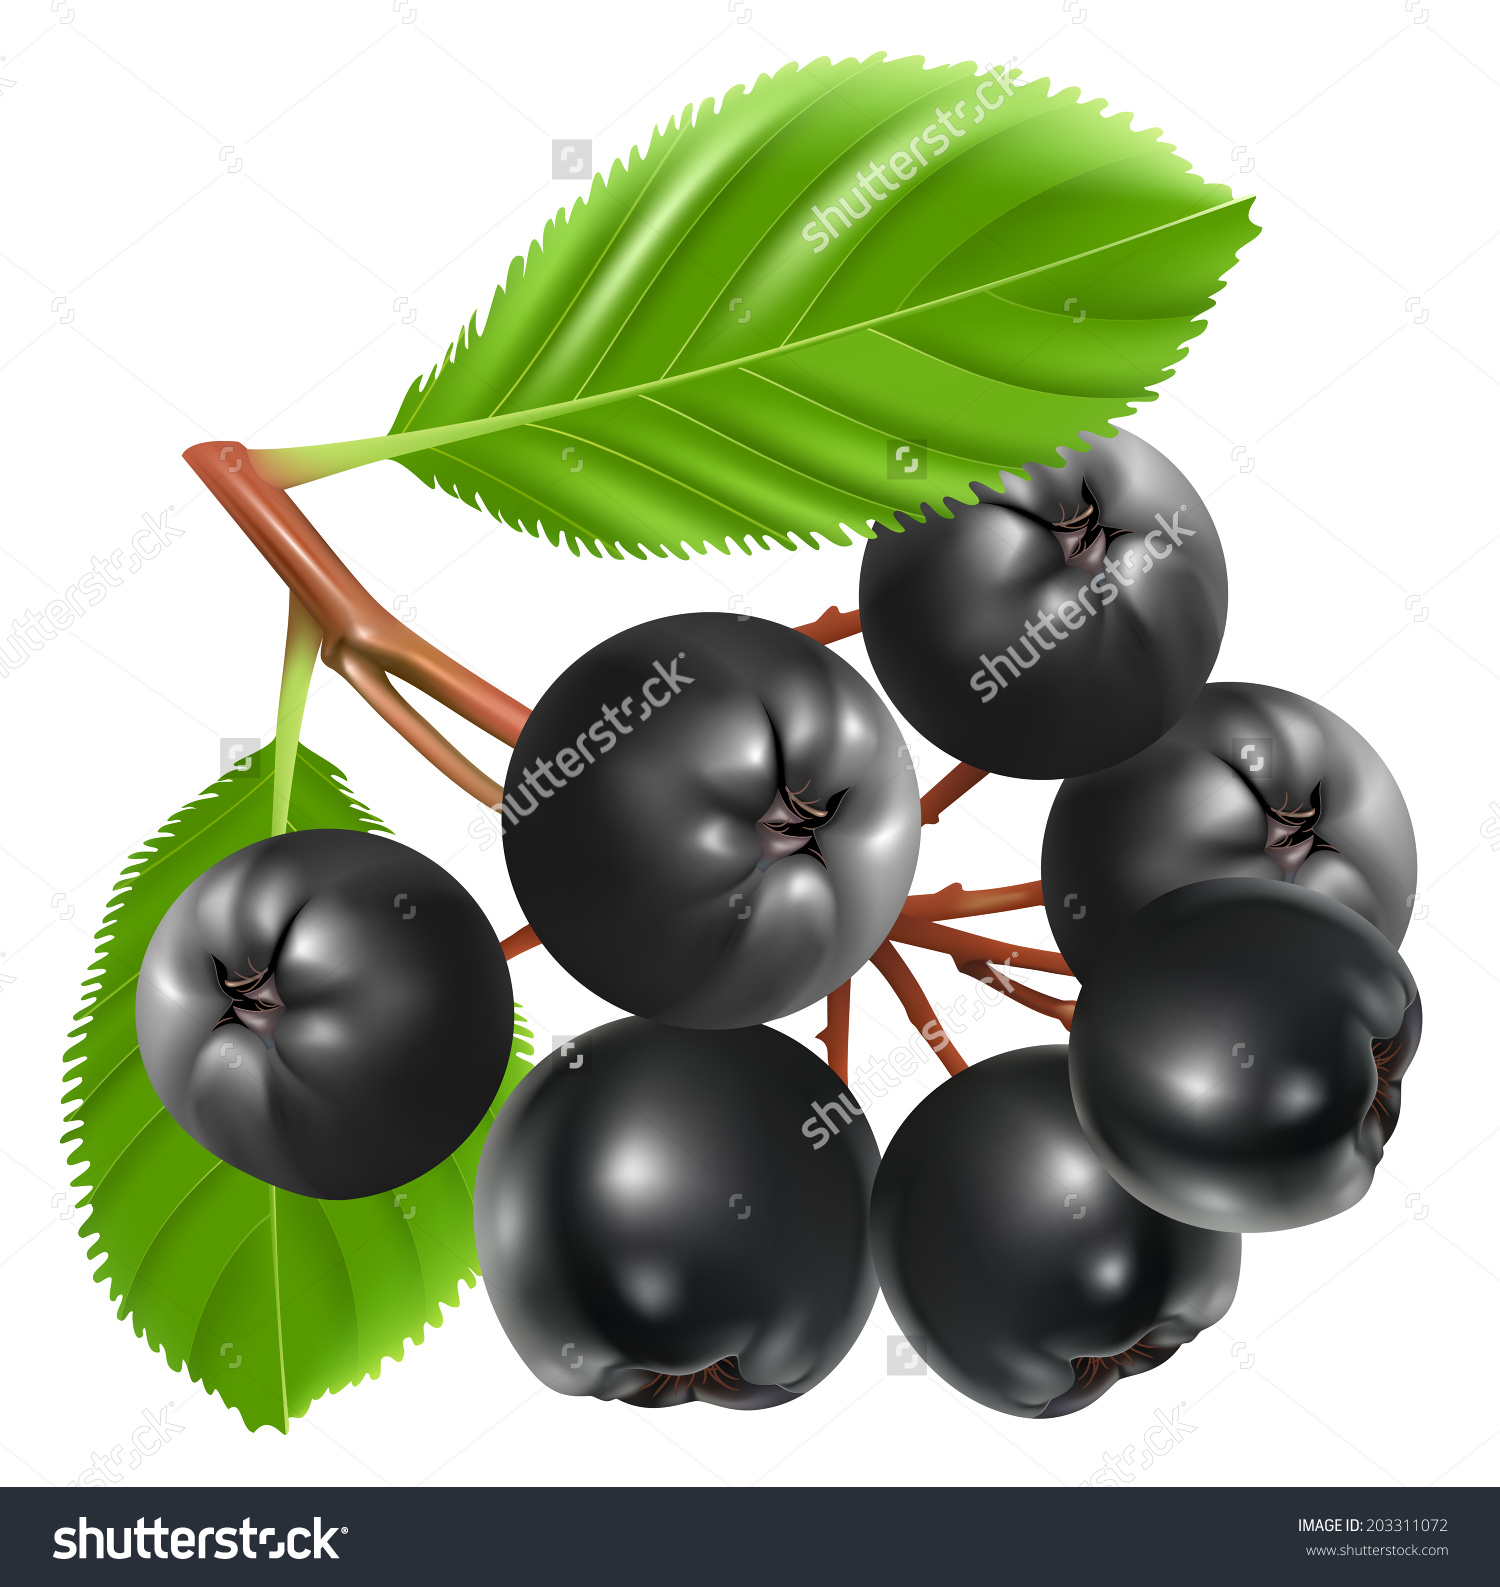 Berry clipart vector. Aronian berries clipground aronia